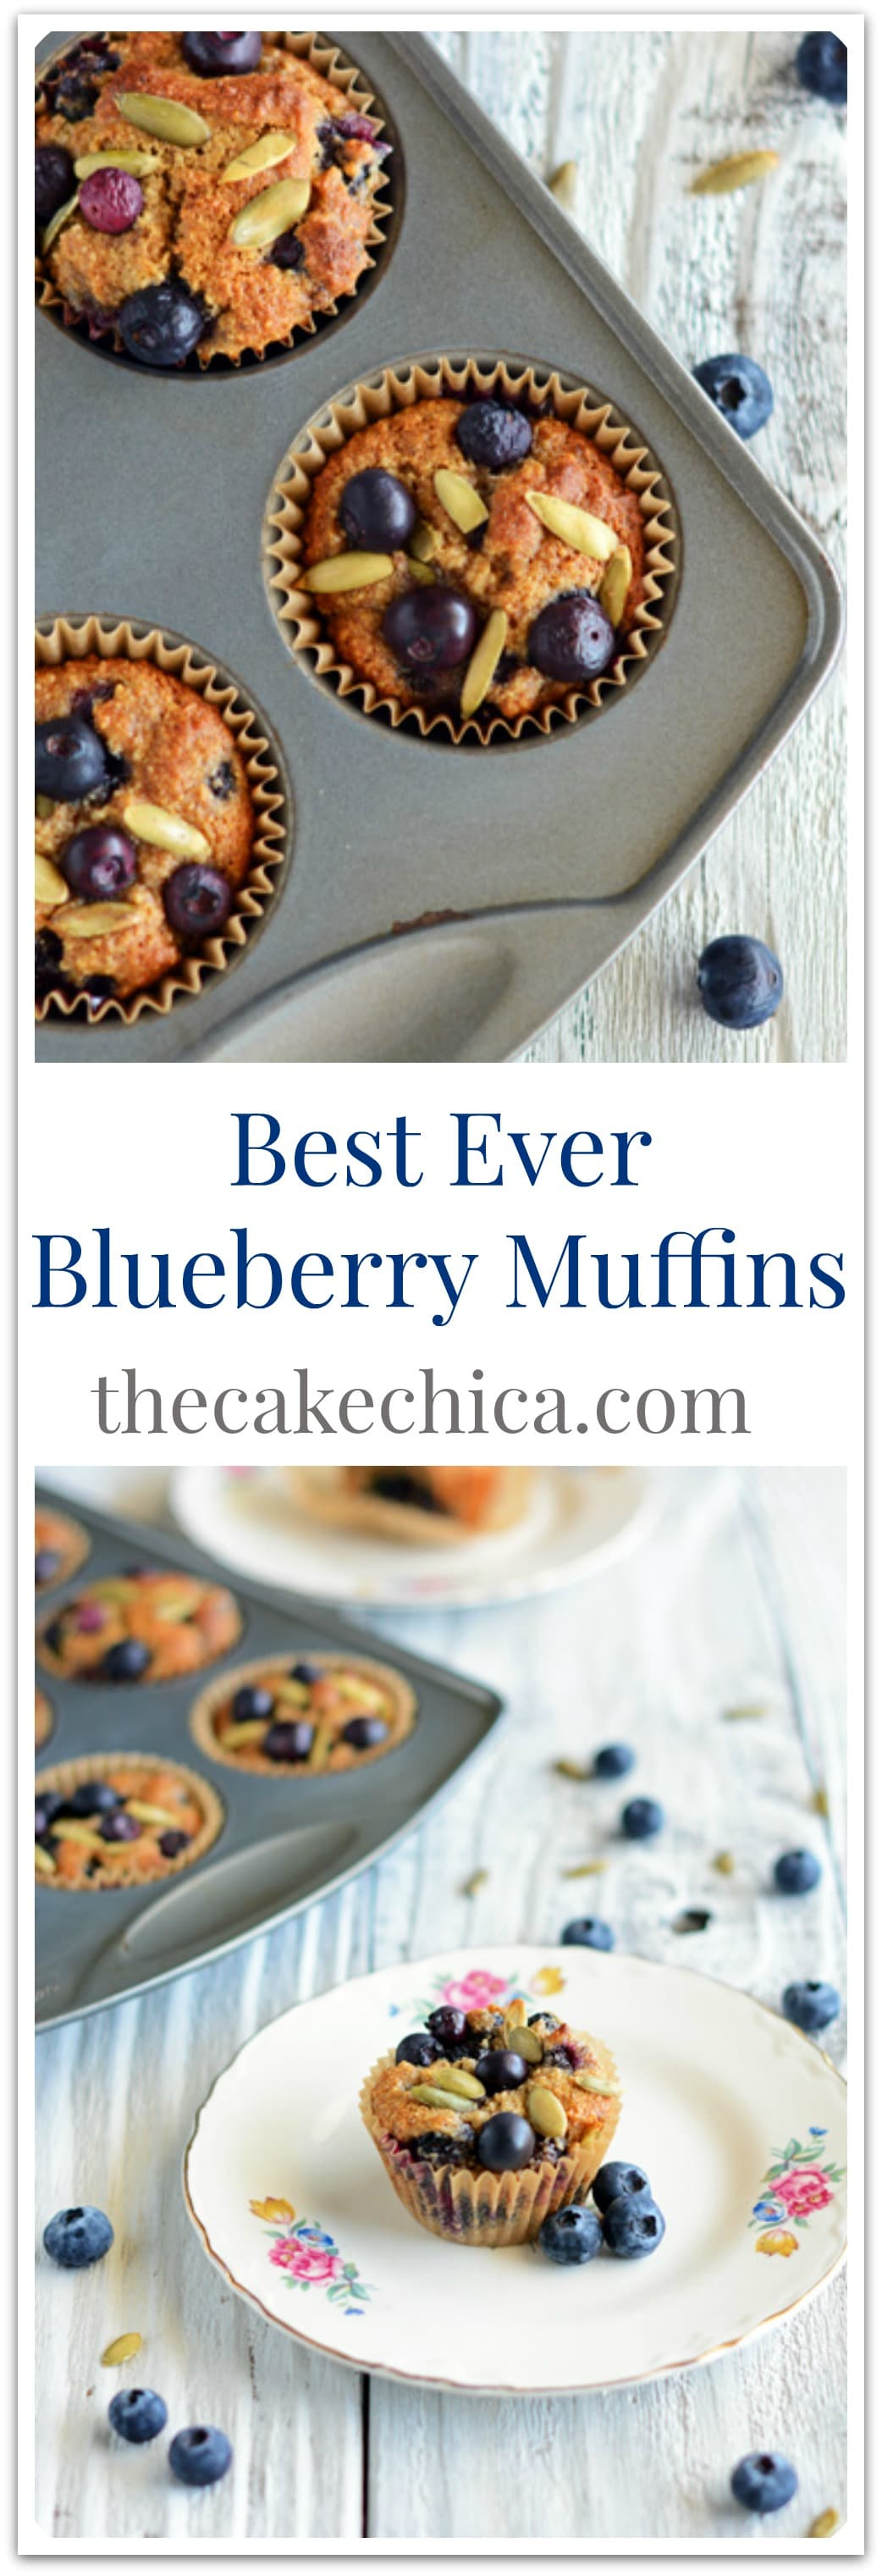 Best Ever Blueberry Muffins